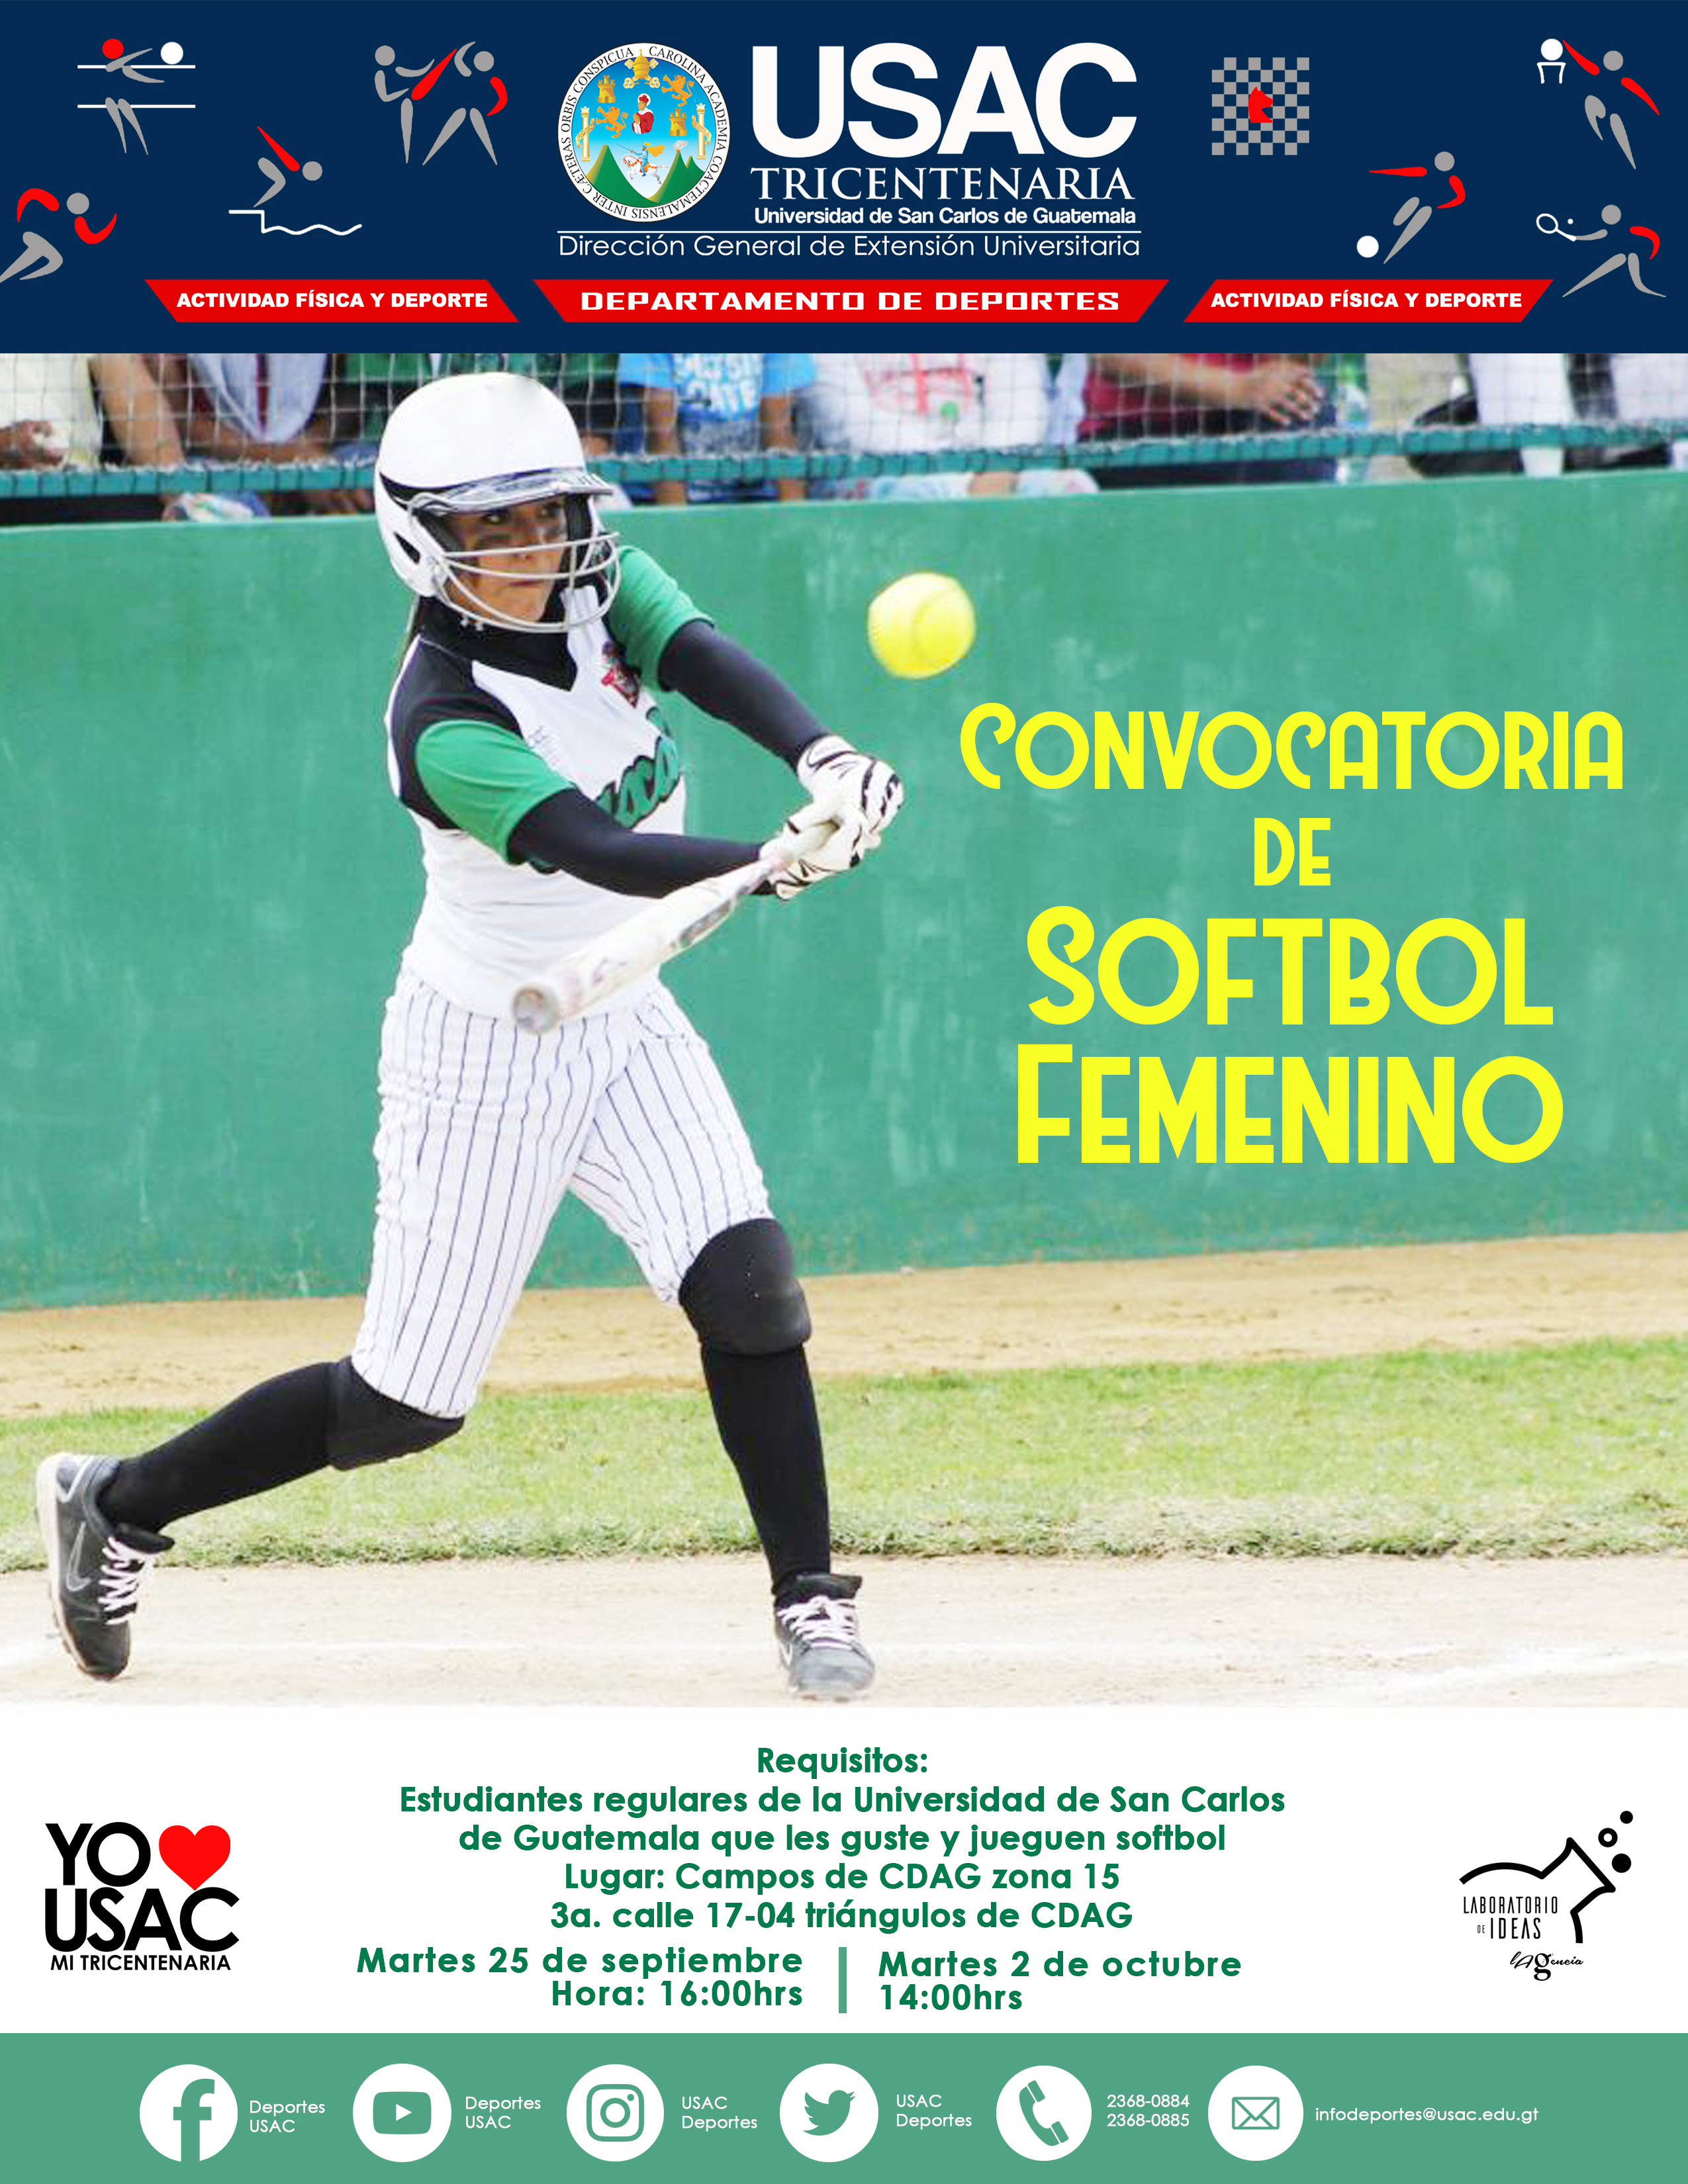 Convocatoria De Softbol Femenina